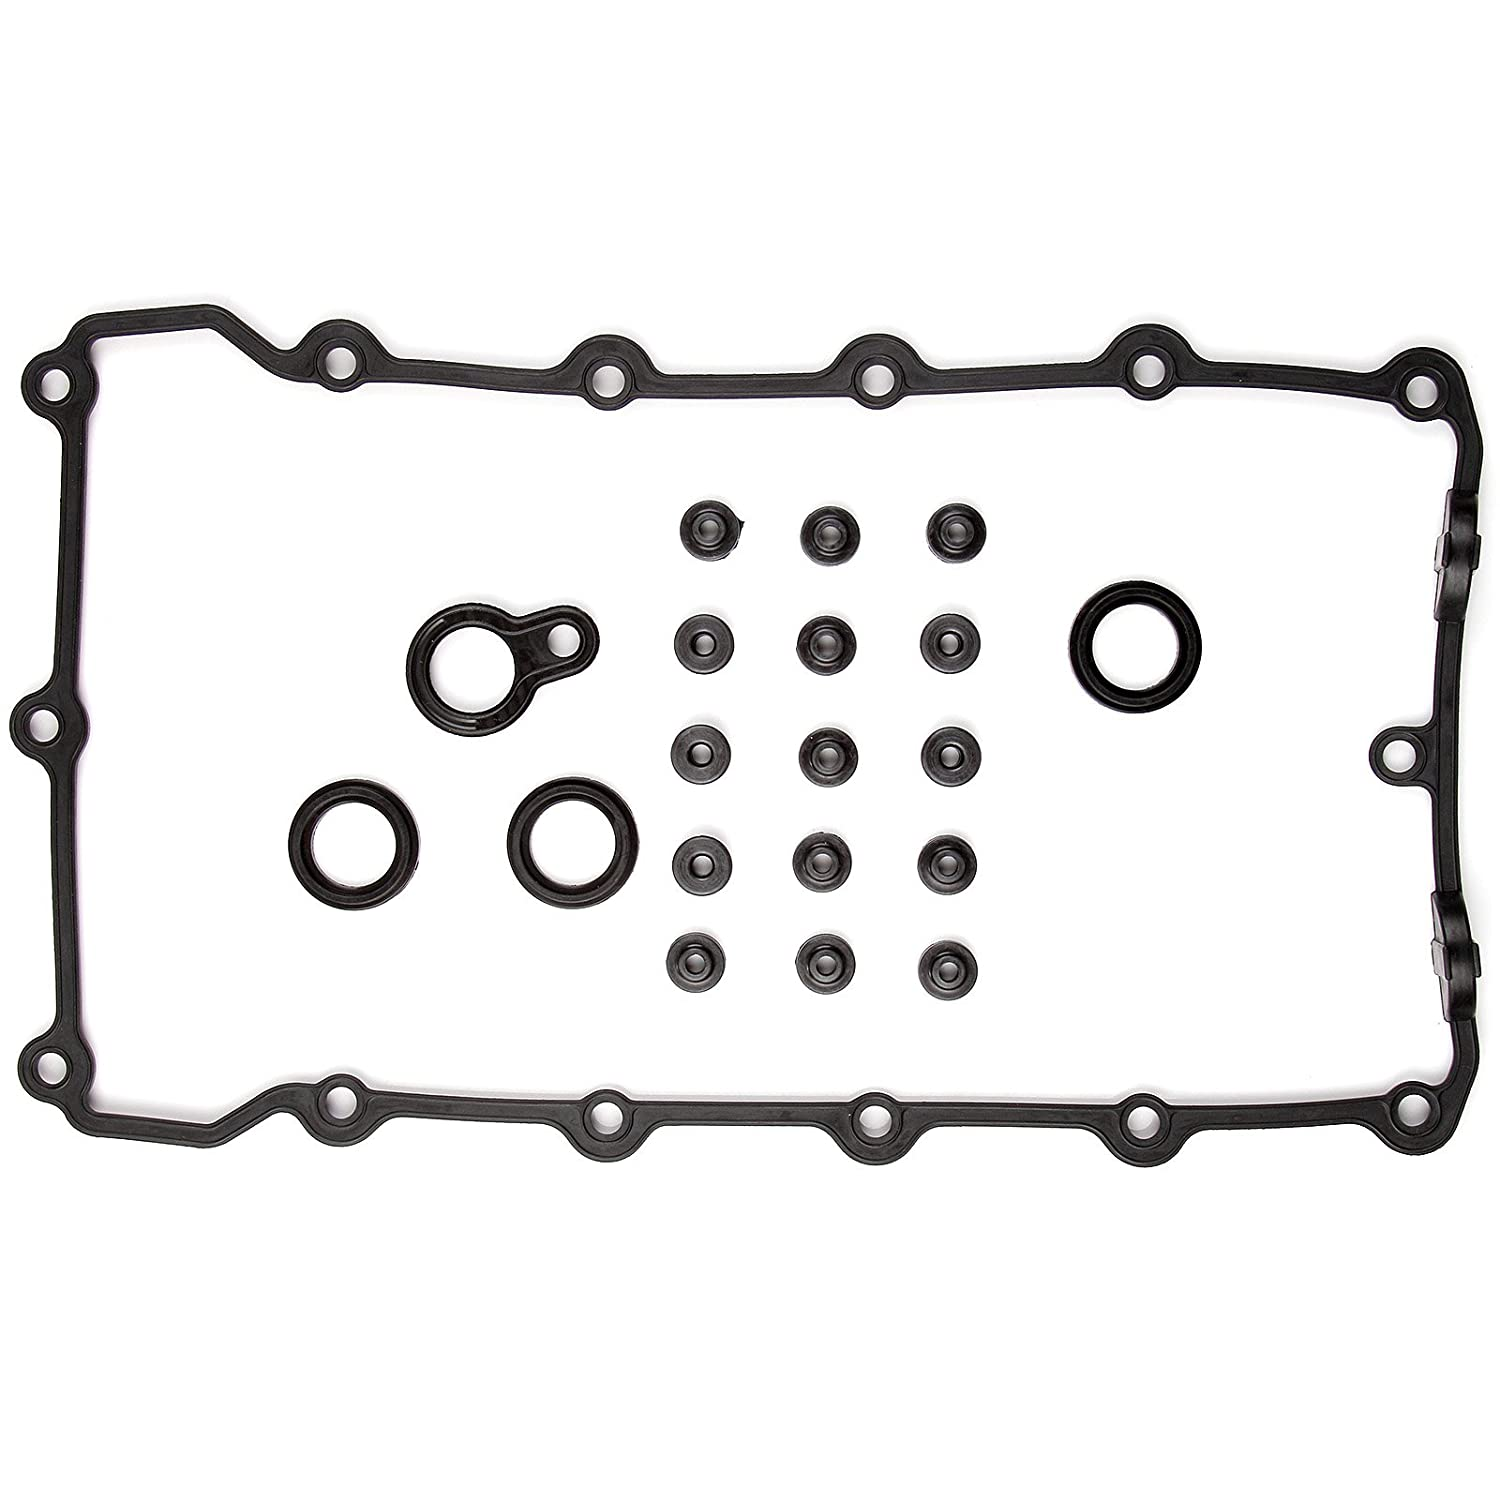 Scitoo Valve Cover Gasket Sets, fit BMW 318i 318is 318ti Z3 1.8L 1.9L M42 M44 1994 – 1999 Engine Valve Covers Gaskets Automotive Replacement Gasket Sets